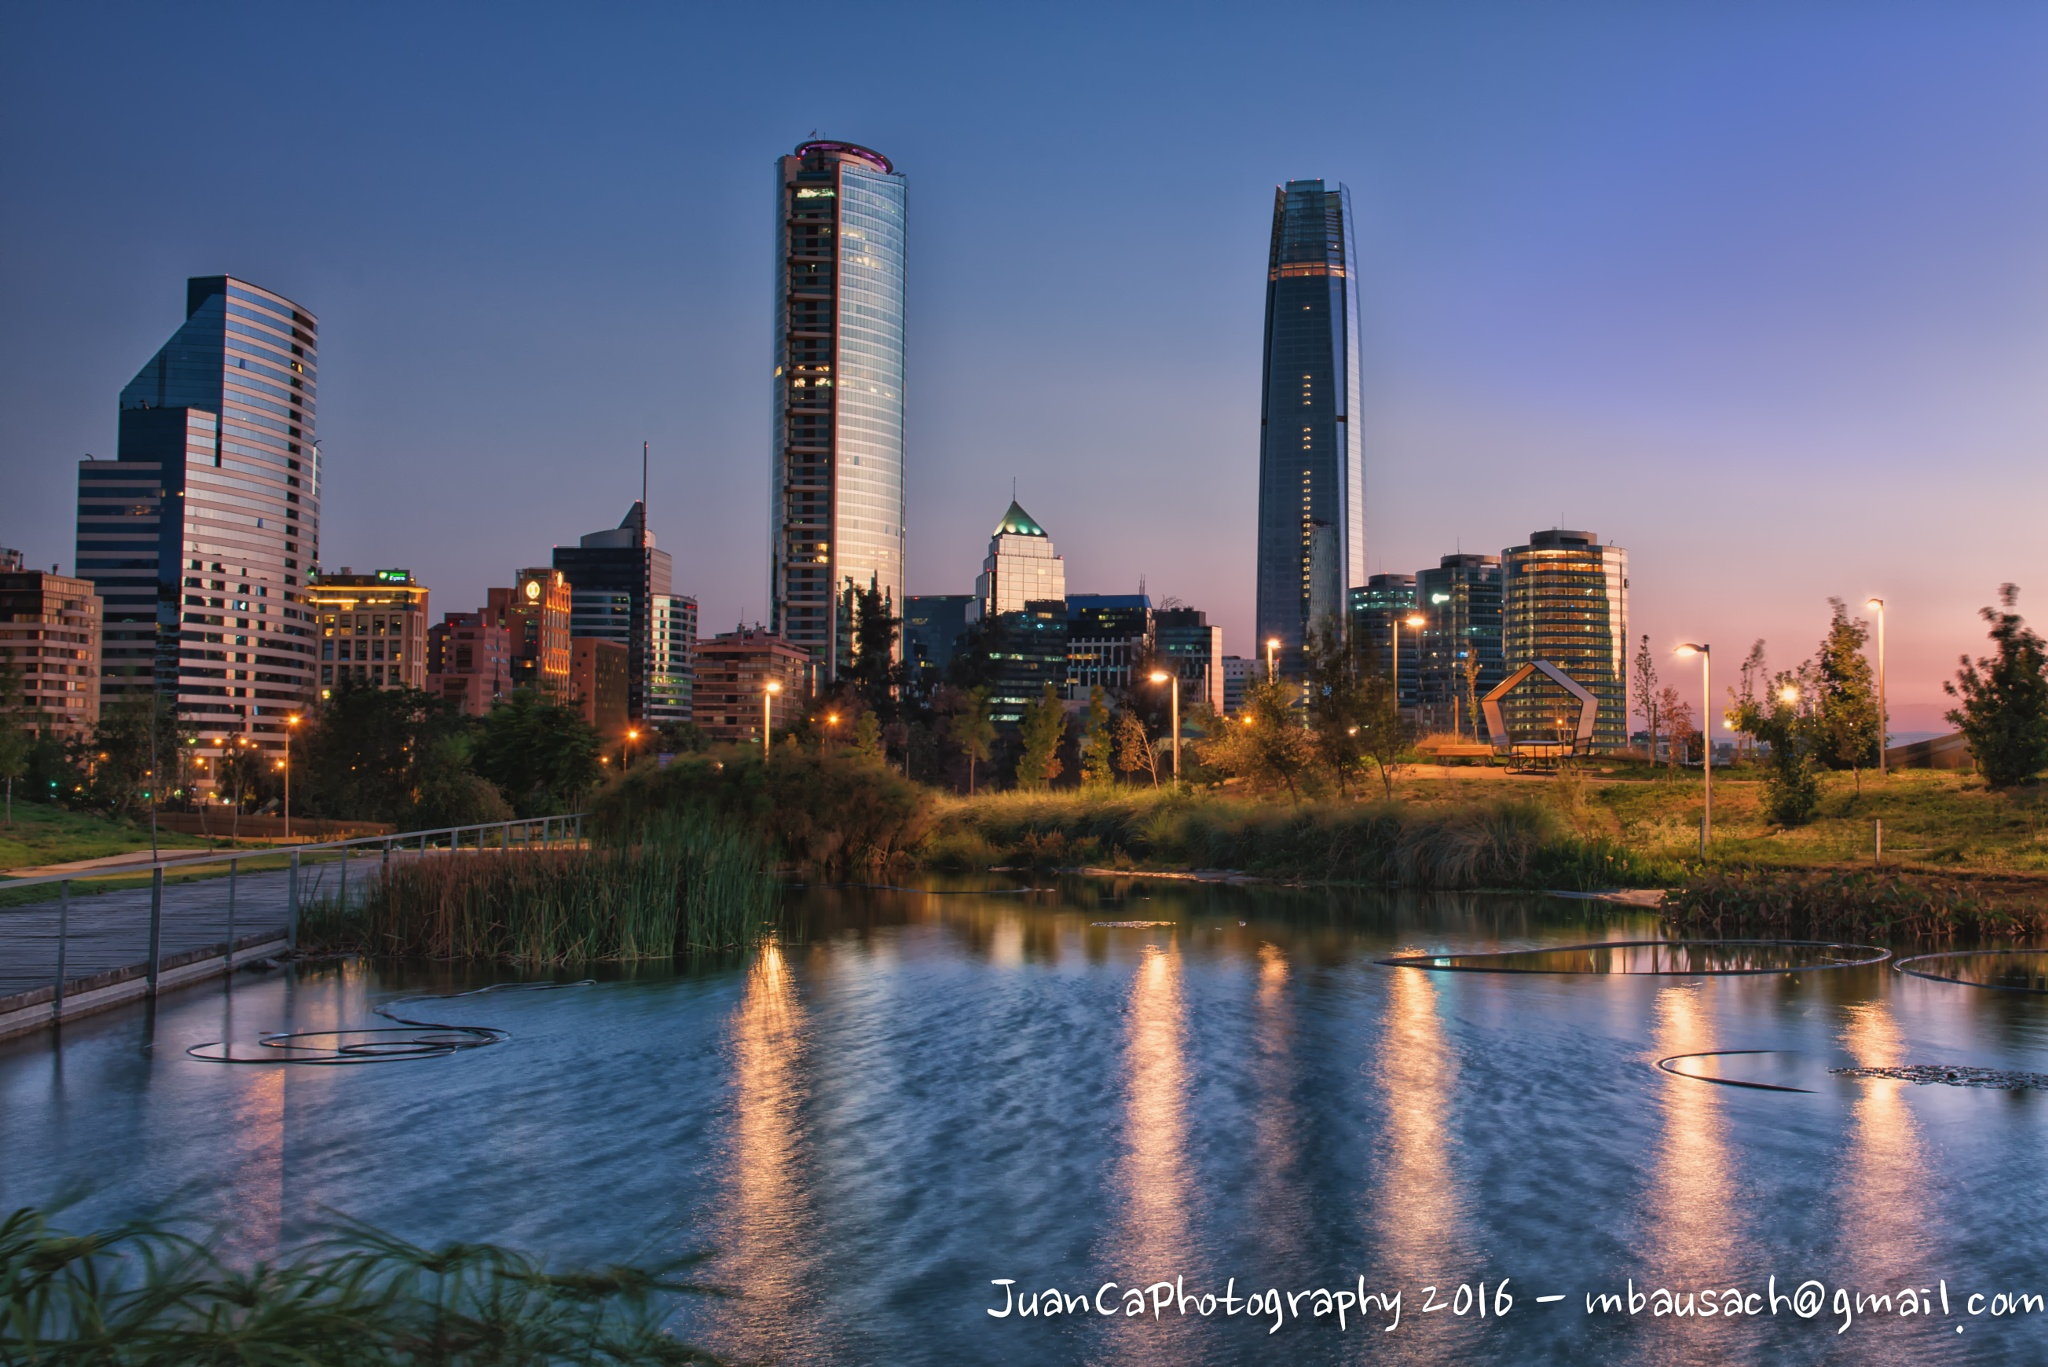 Costanera Center by JuanCaPhotography